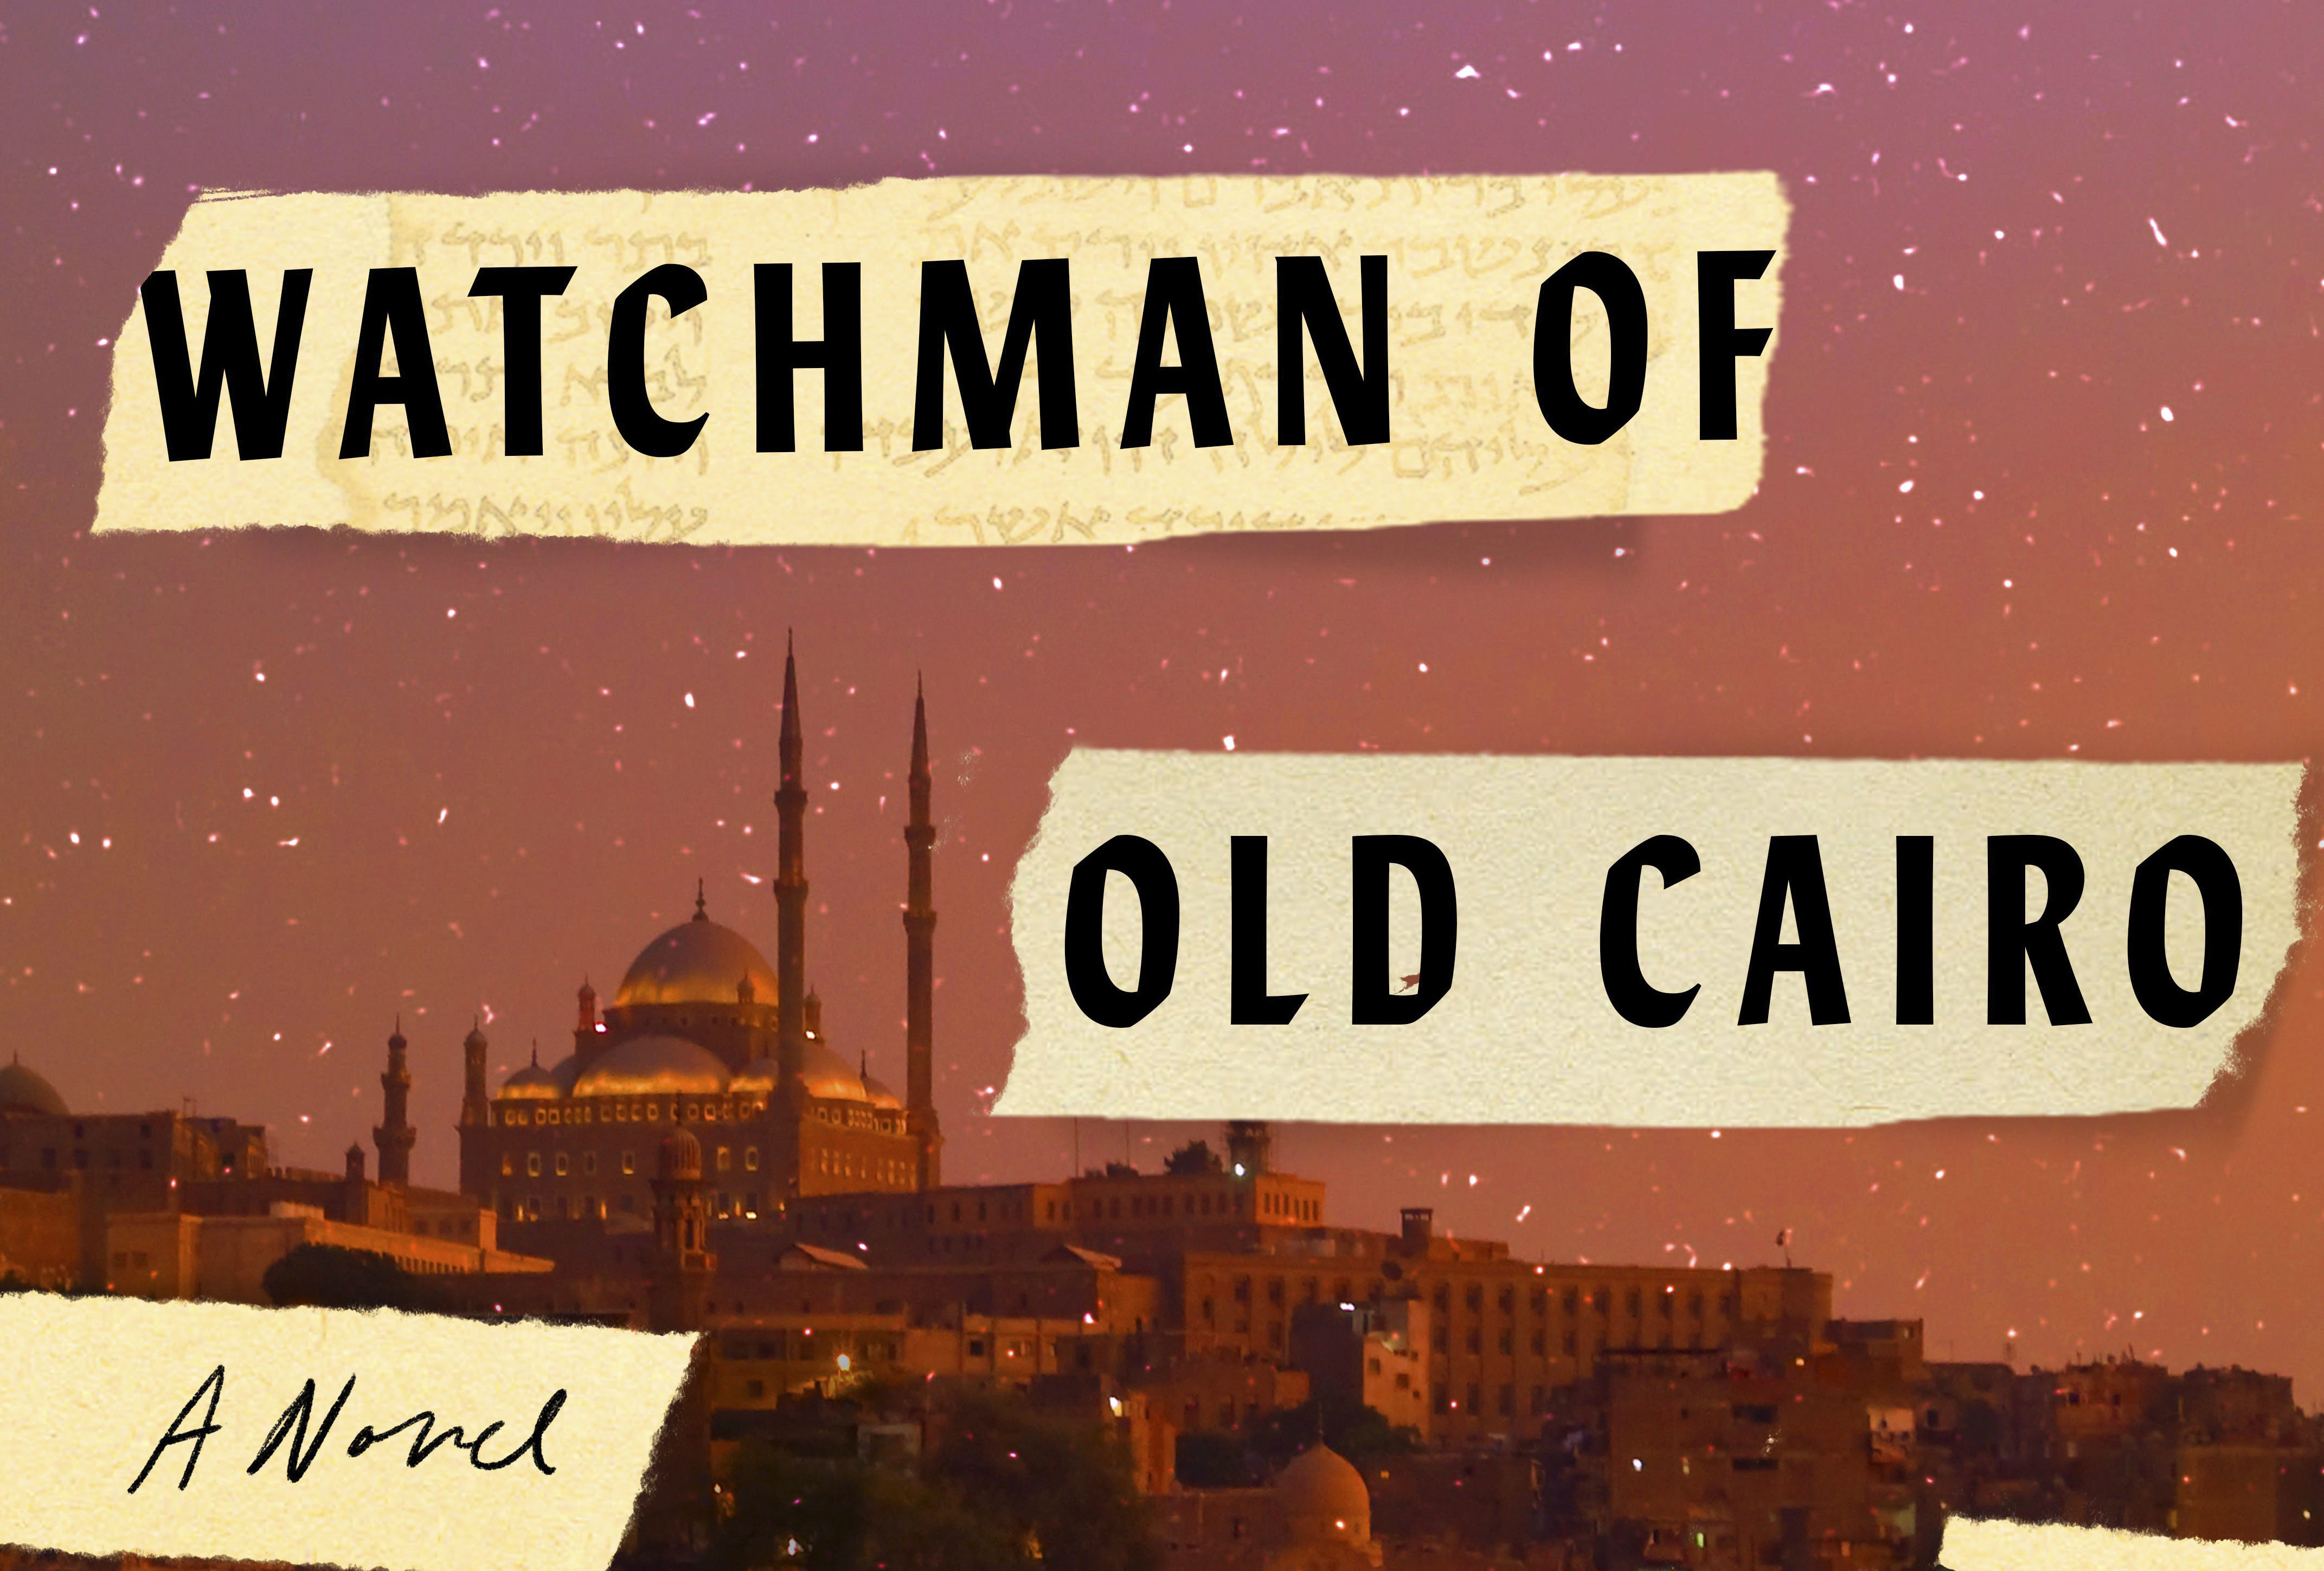 """From the cover of """"The Last Watchman of Old Cairo"""" by Michael David Lukas"""